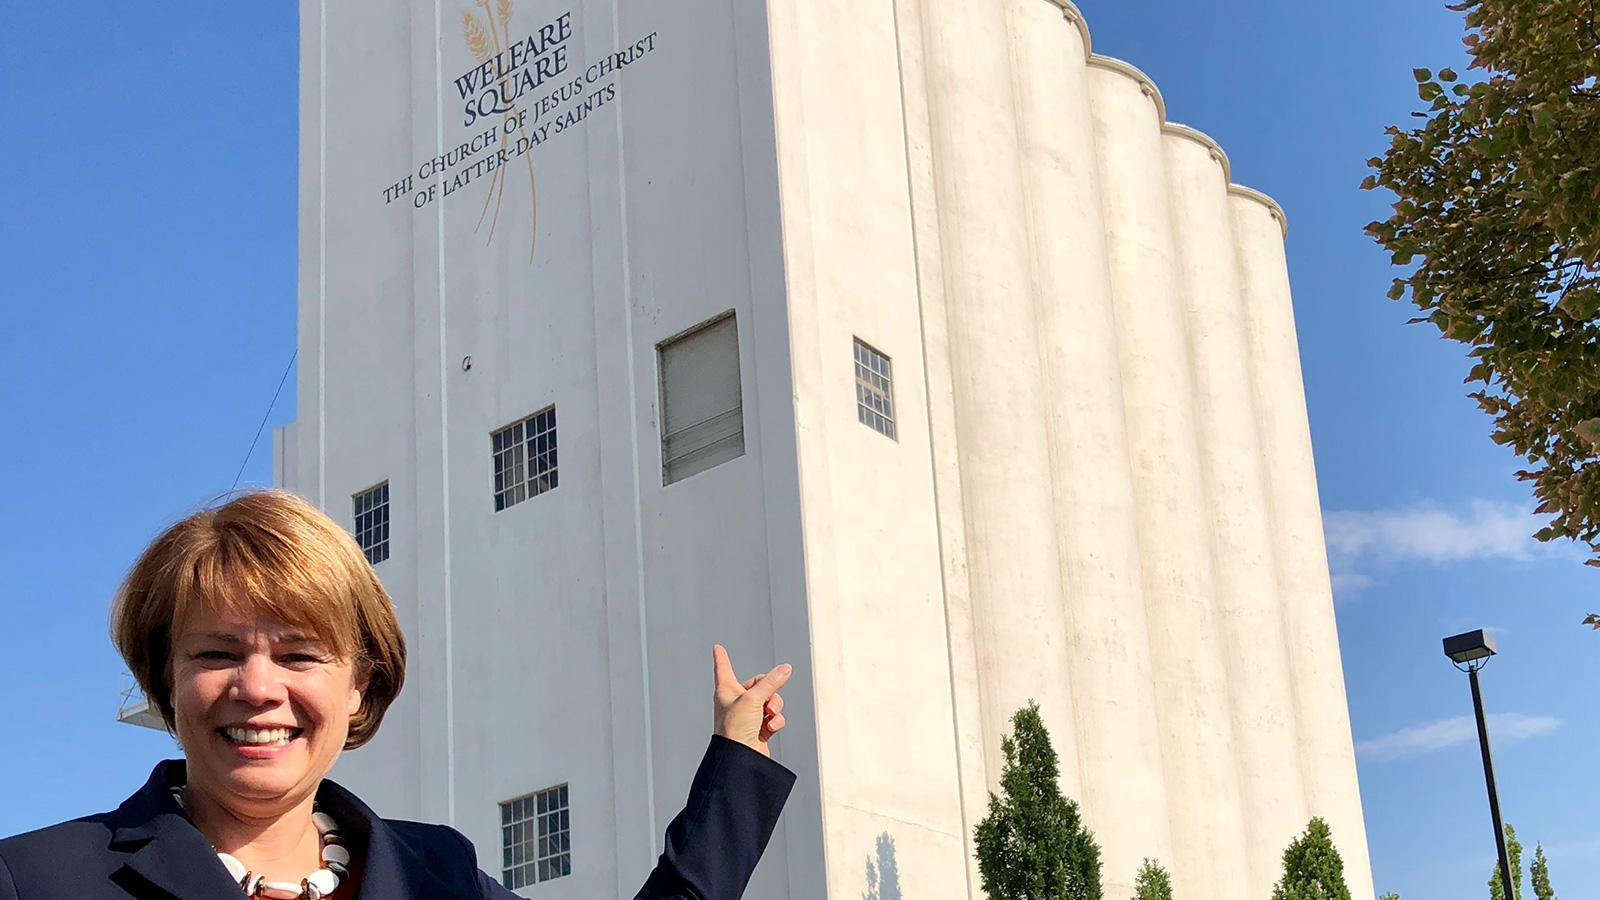 Sister Sharon Eubank, first counselor in the Relief Society general presidency, enjoys taking ambassadors and other international visitors to Welfare Square. One of her favorite places to stop on the tour is in front of the tall white grain elevators.